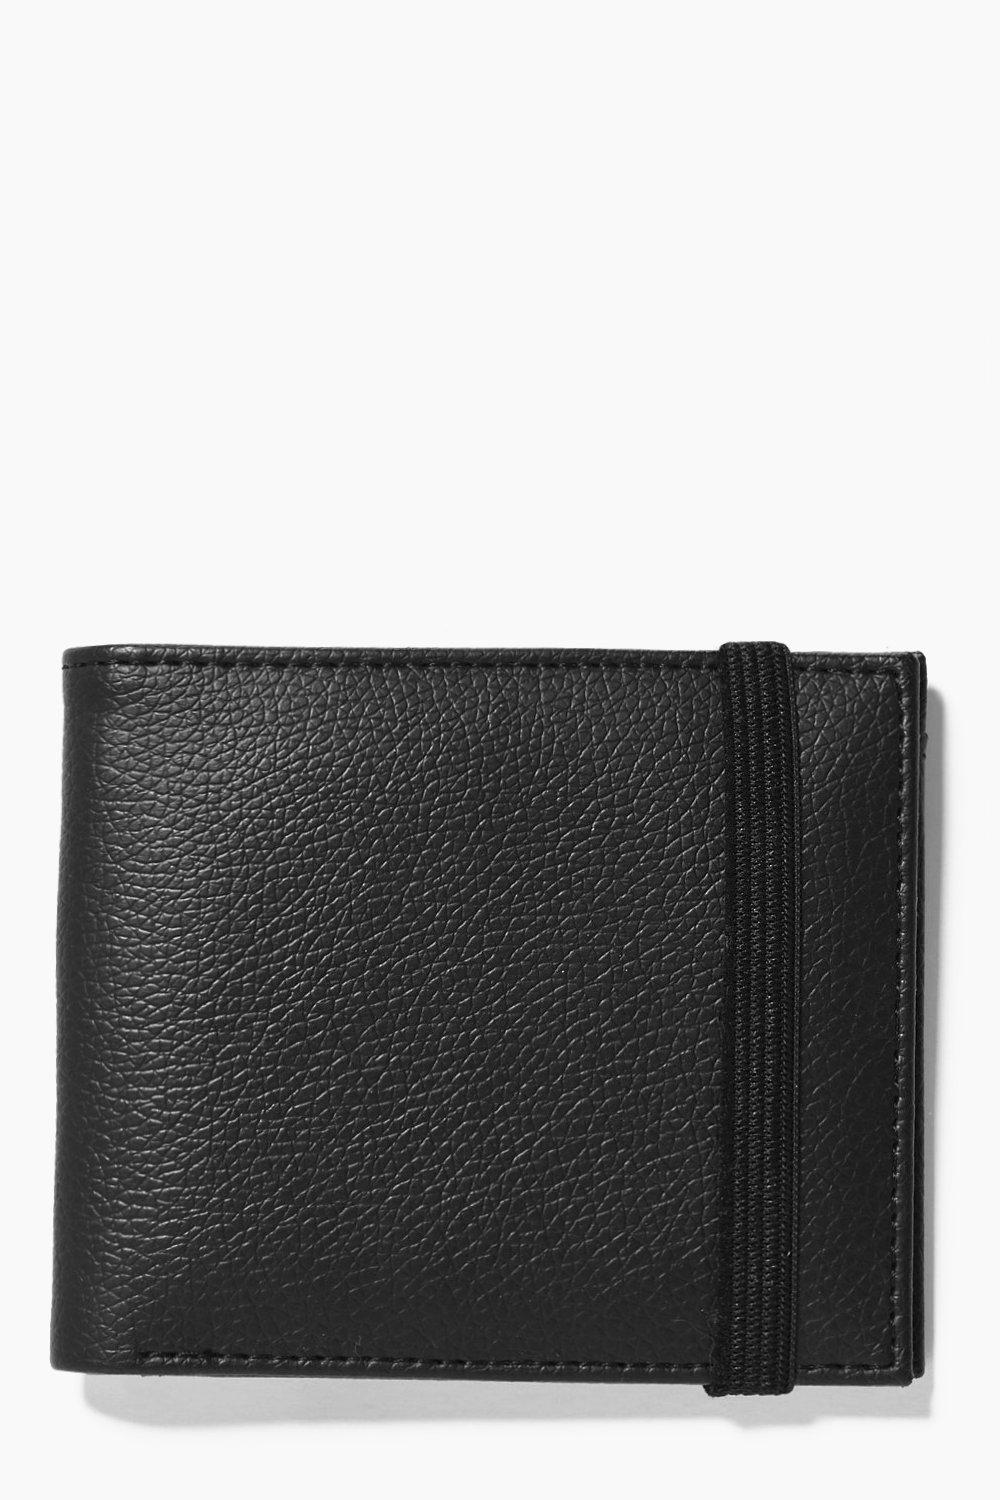 Look Billfold Wallet With Elastic Fastening - blac